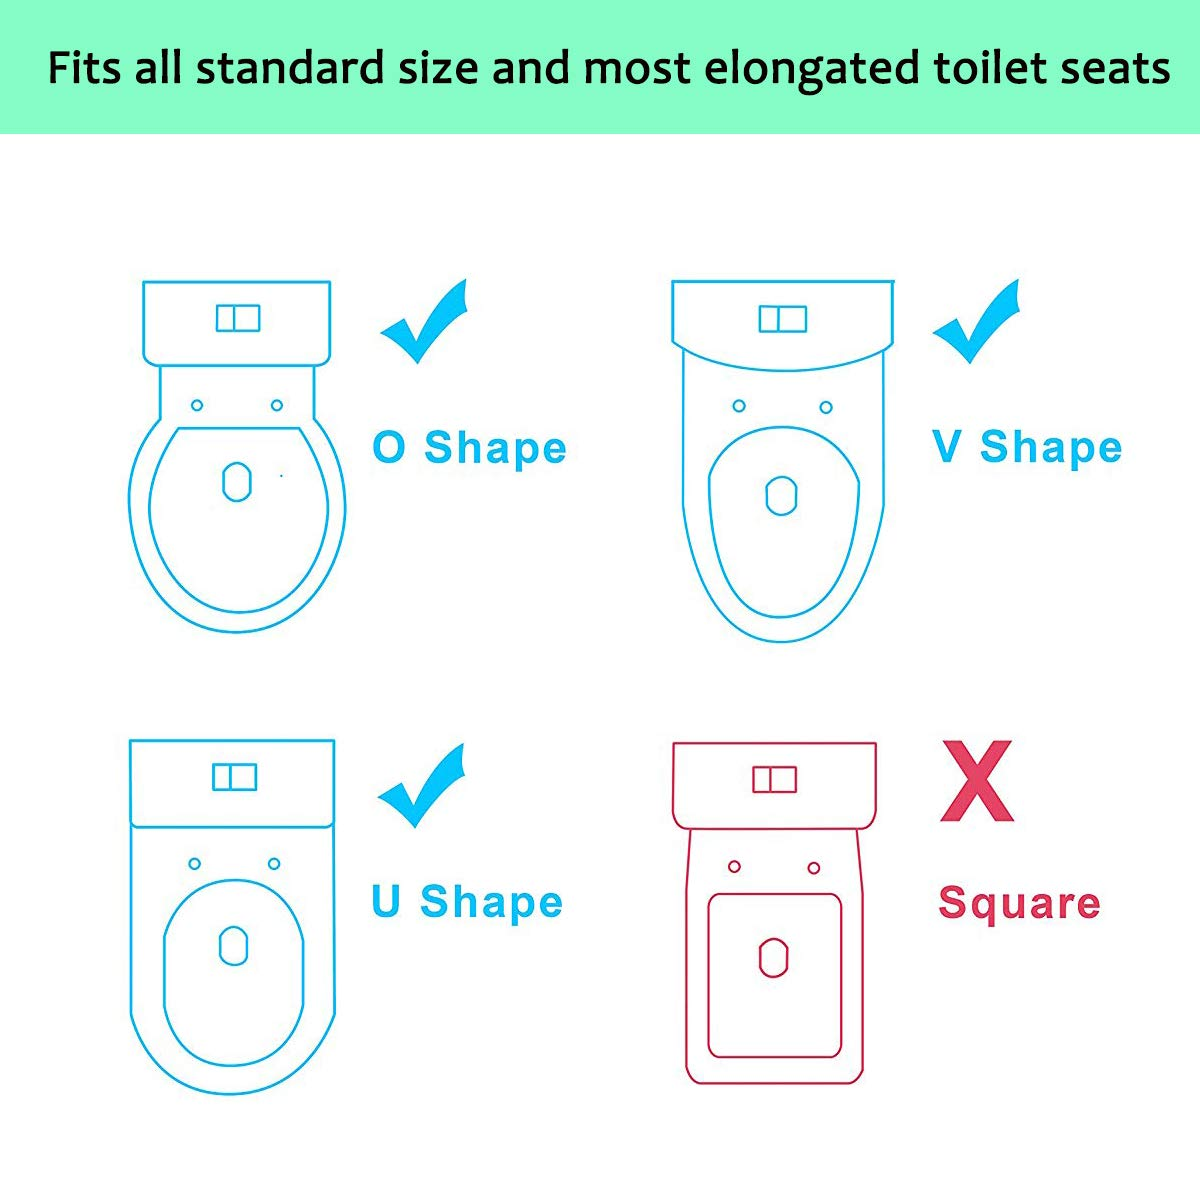 Blue Potty Training Seat with Step Stool Ladder,SKYROKU Potty Training Toilet for Kids Boys Girls Toddlers-Comfortable Safe Potty Seat with Anti-Slip Pads Ladder